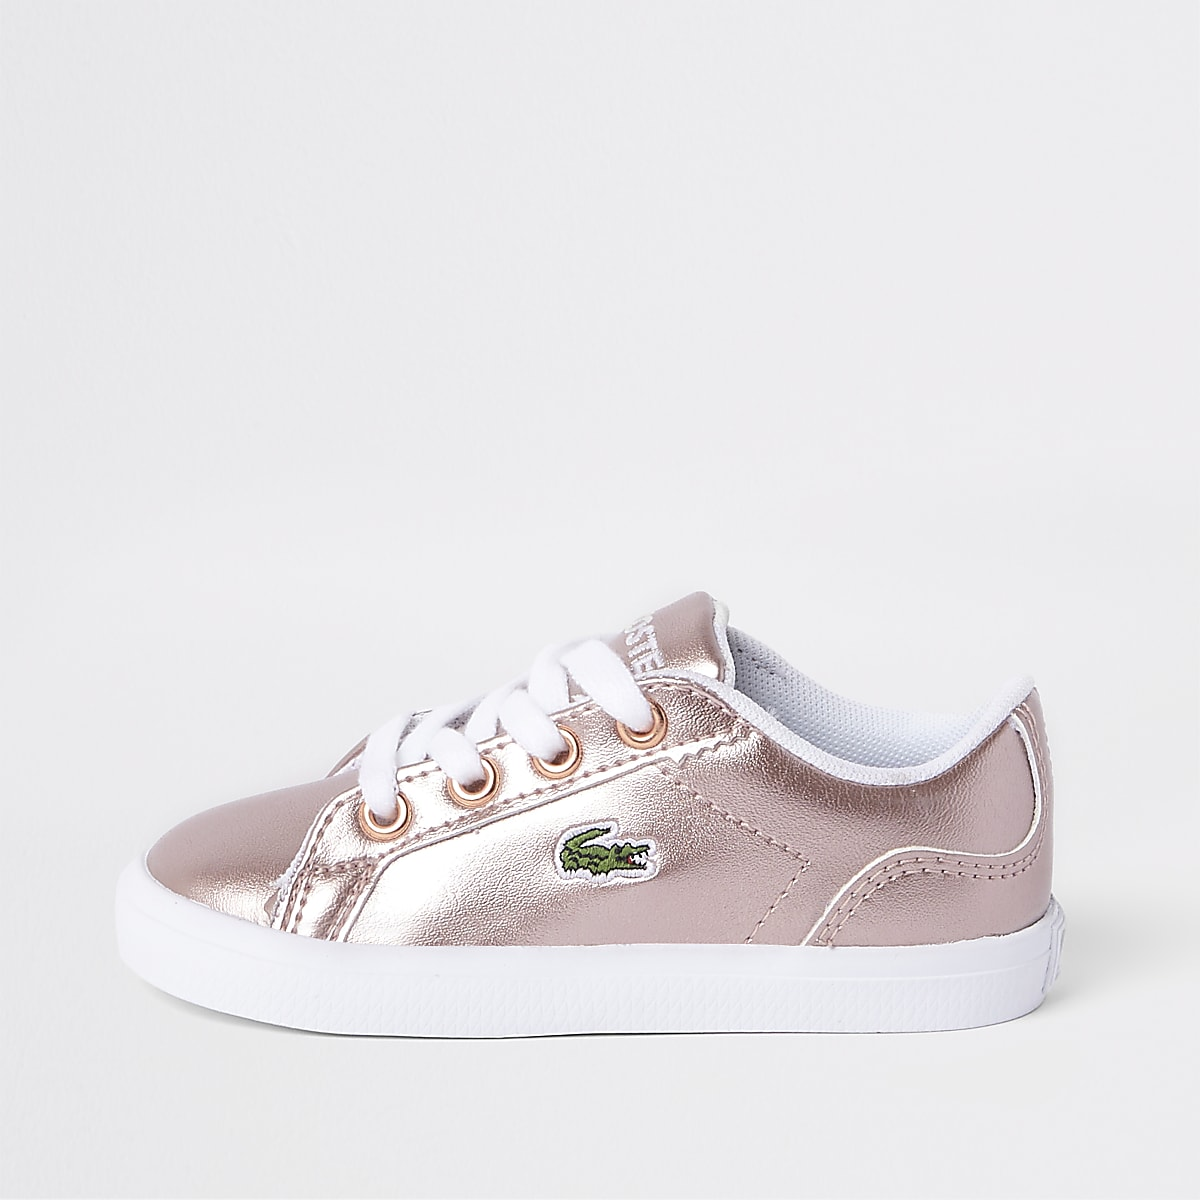 bf44719640a9 Mini girls Lacoste pink lace up trainers - Baby Girls Trainers - Baby Girls  Shoes   Boots - Mini Girls - girls